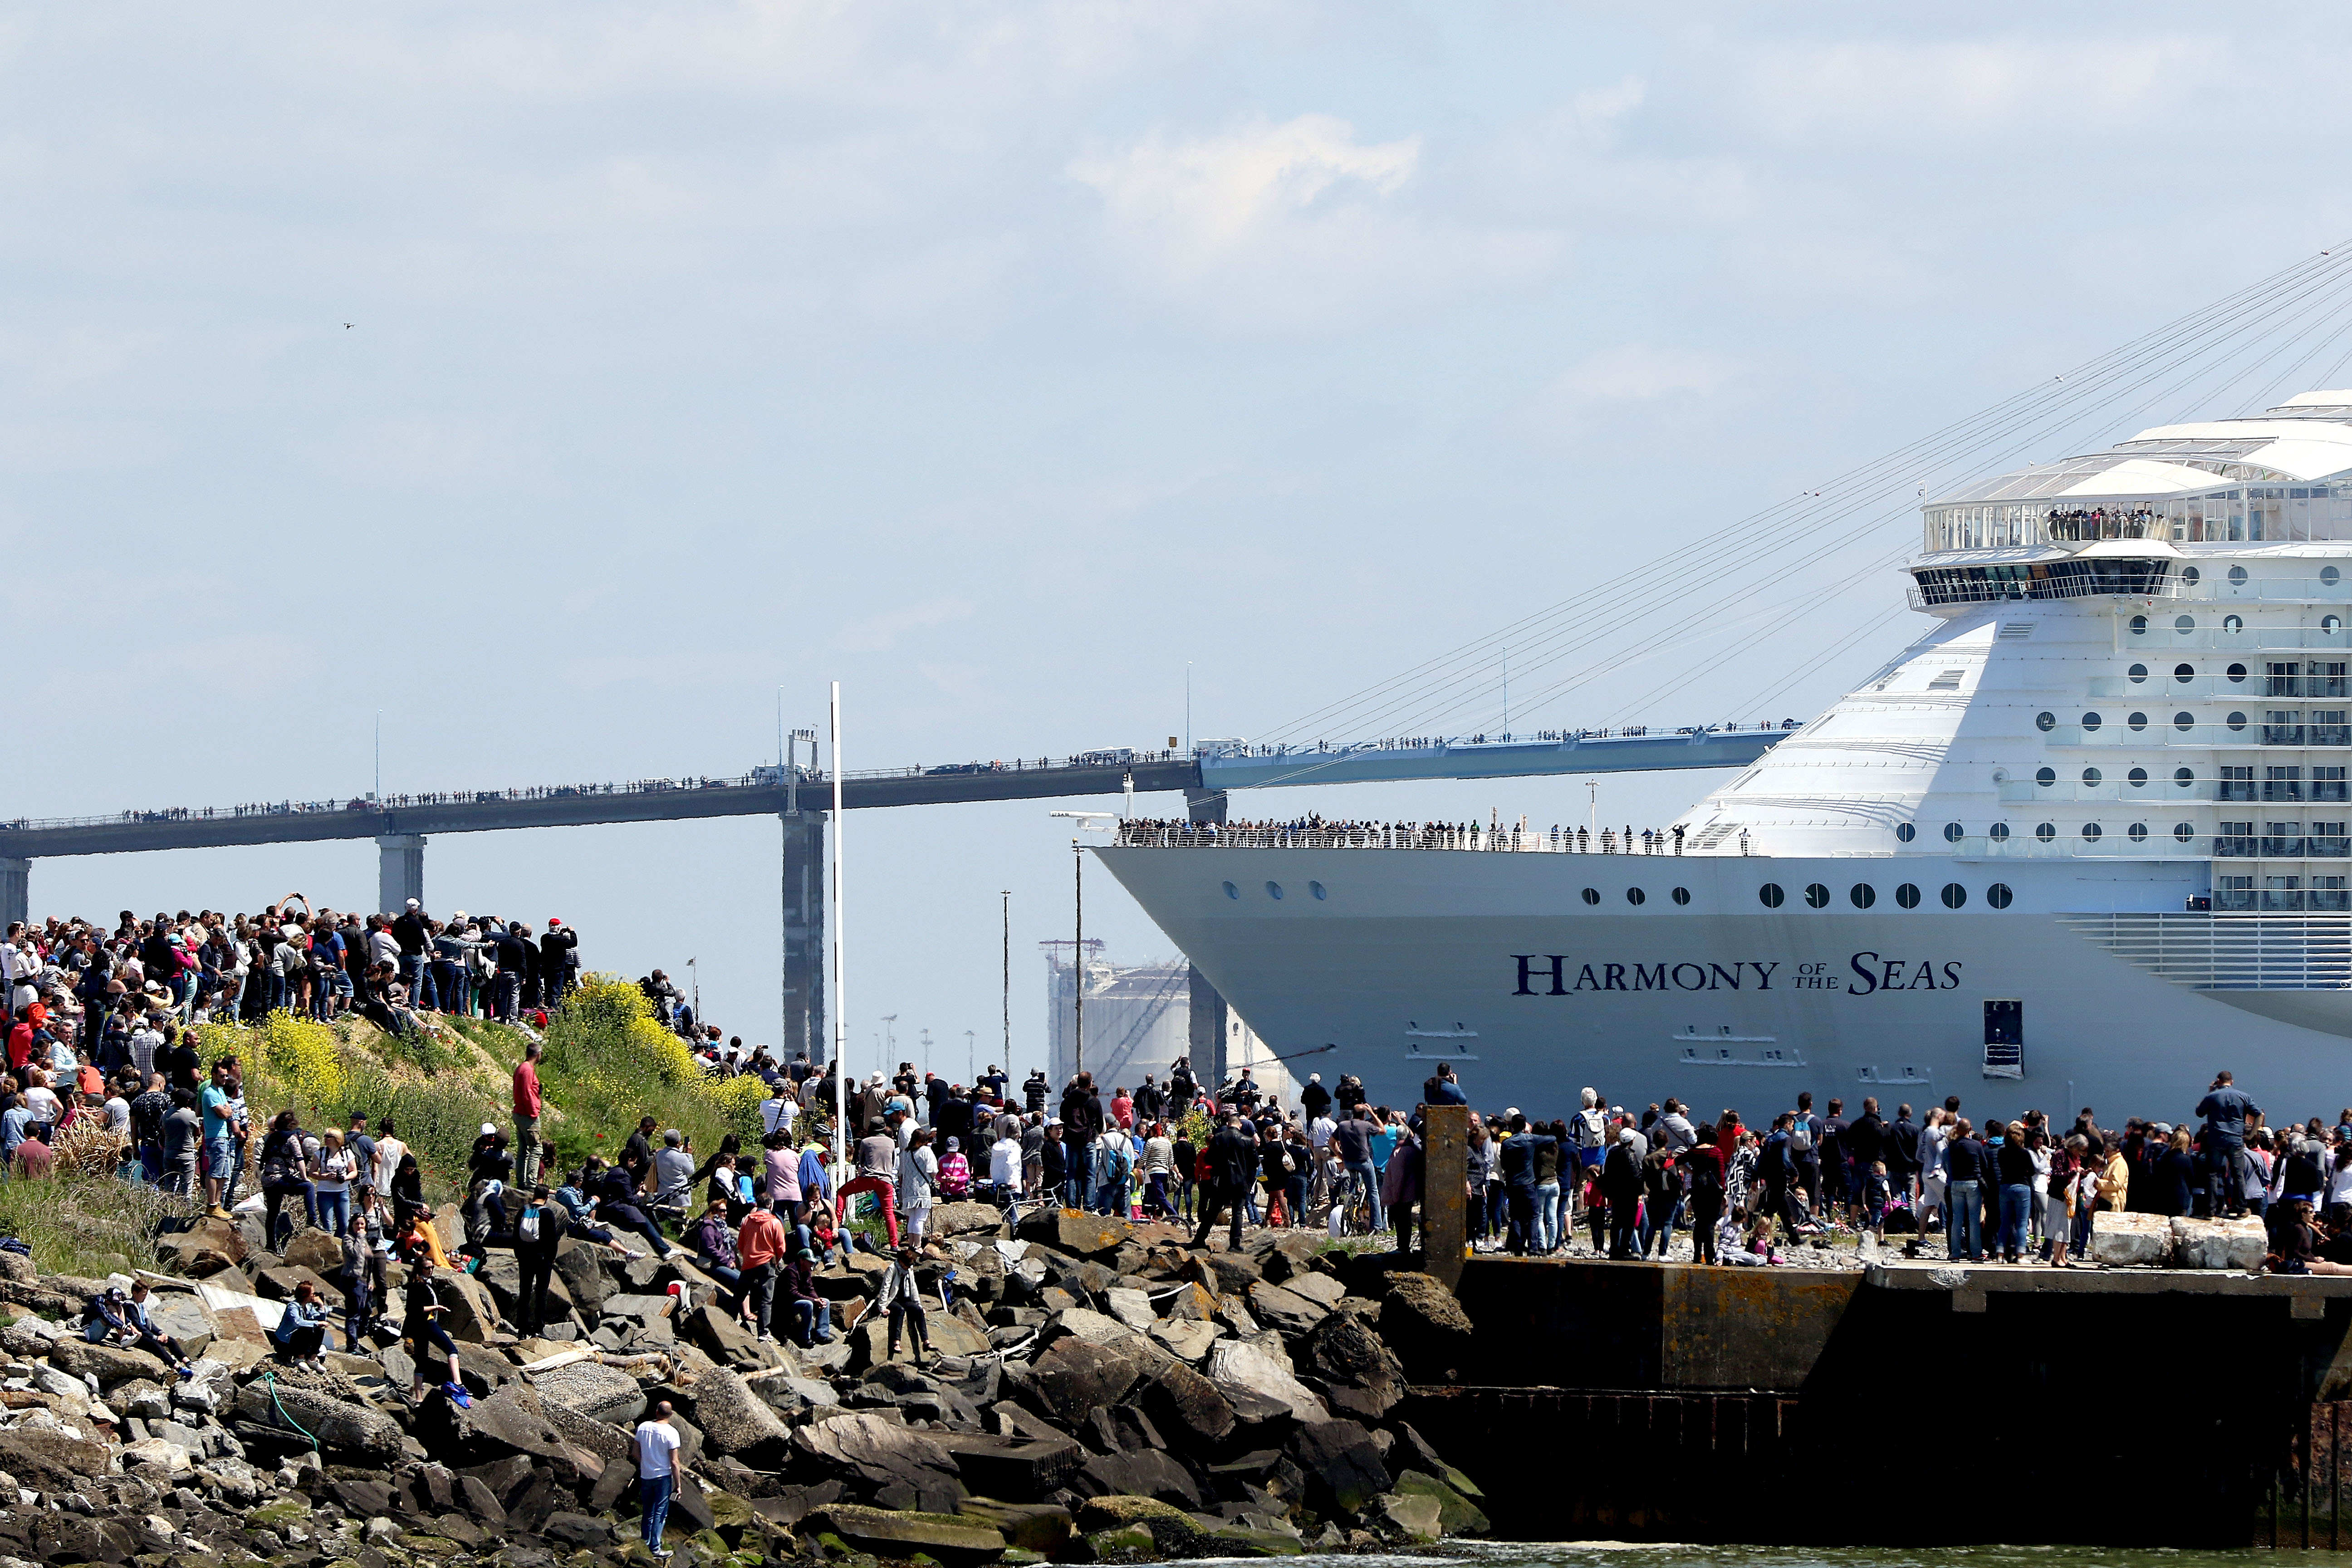 Massive crowd sees off world's largest cruise ship in France